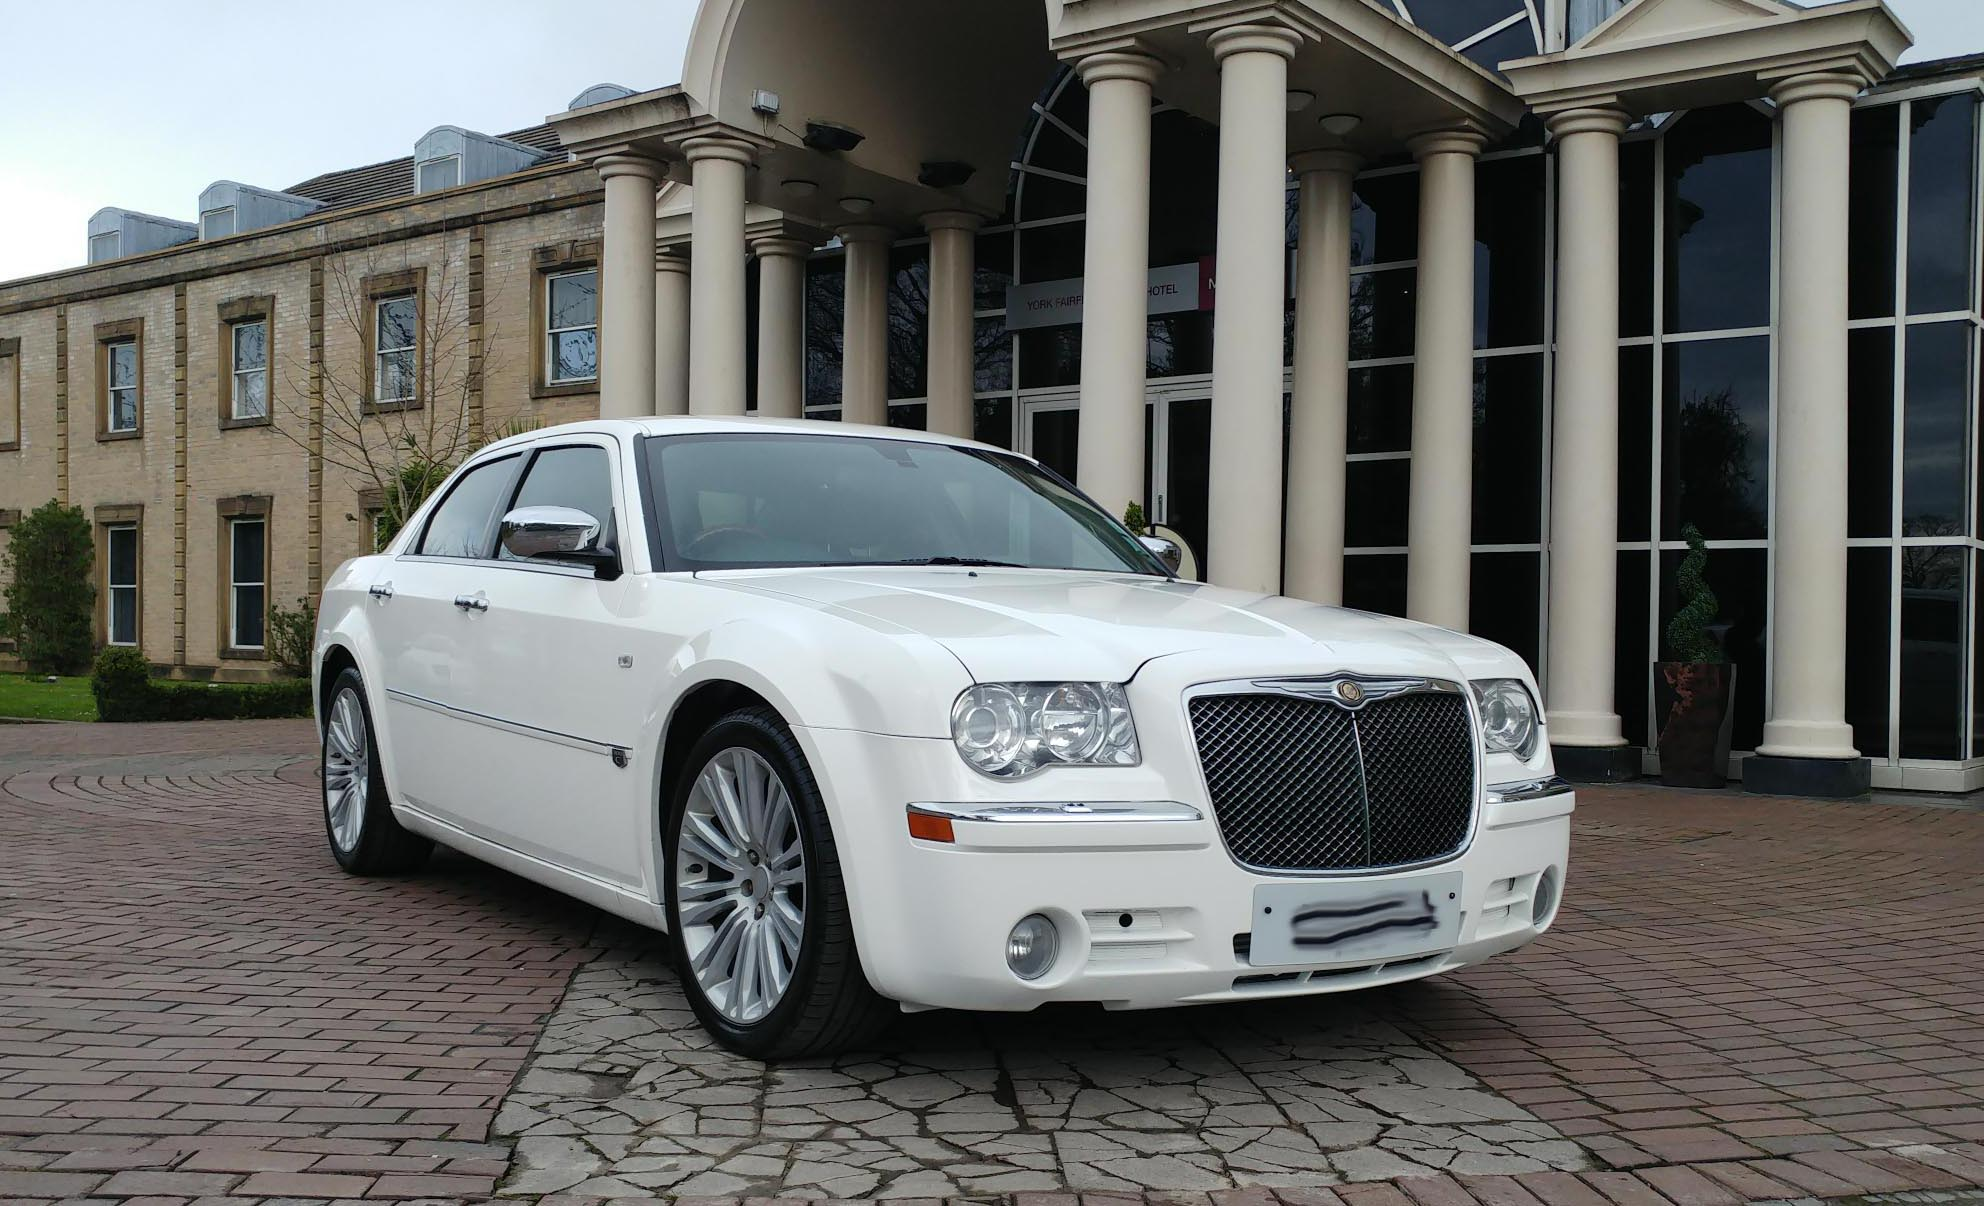 prestige chrysler c300 baby bentley hire for weddings Proms